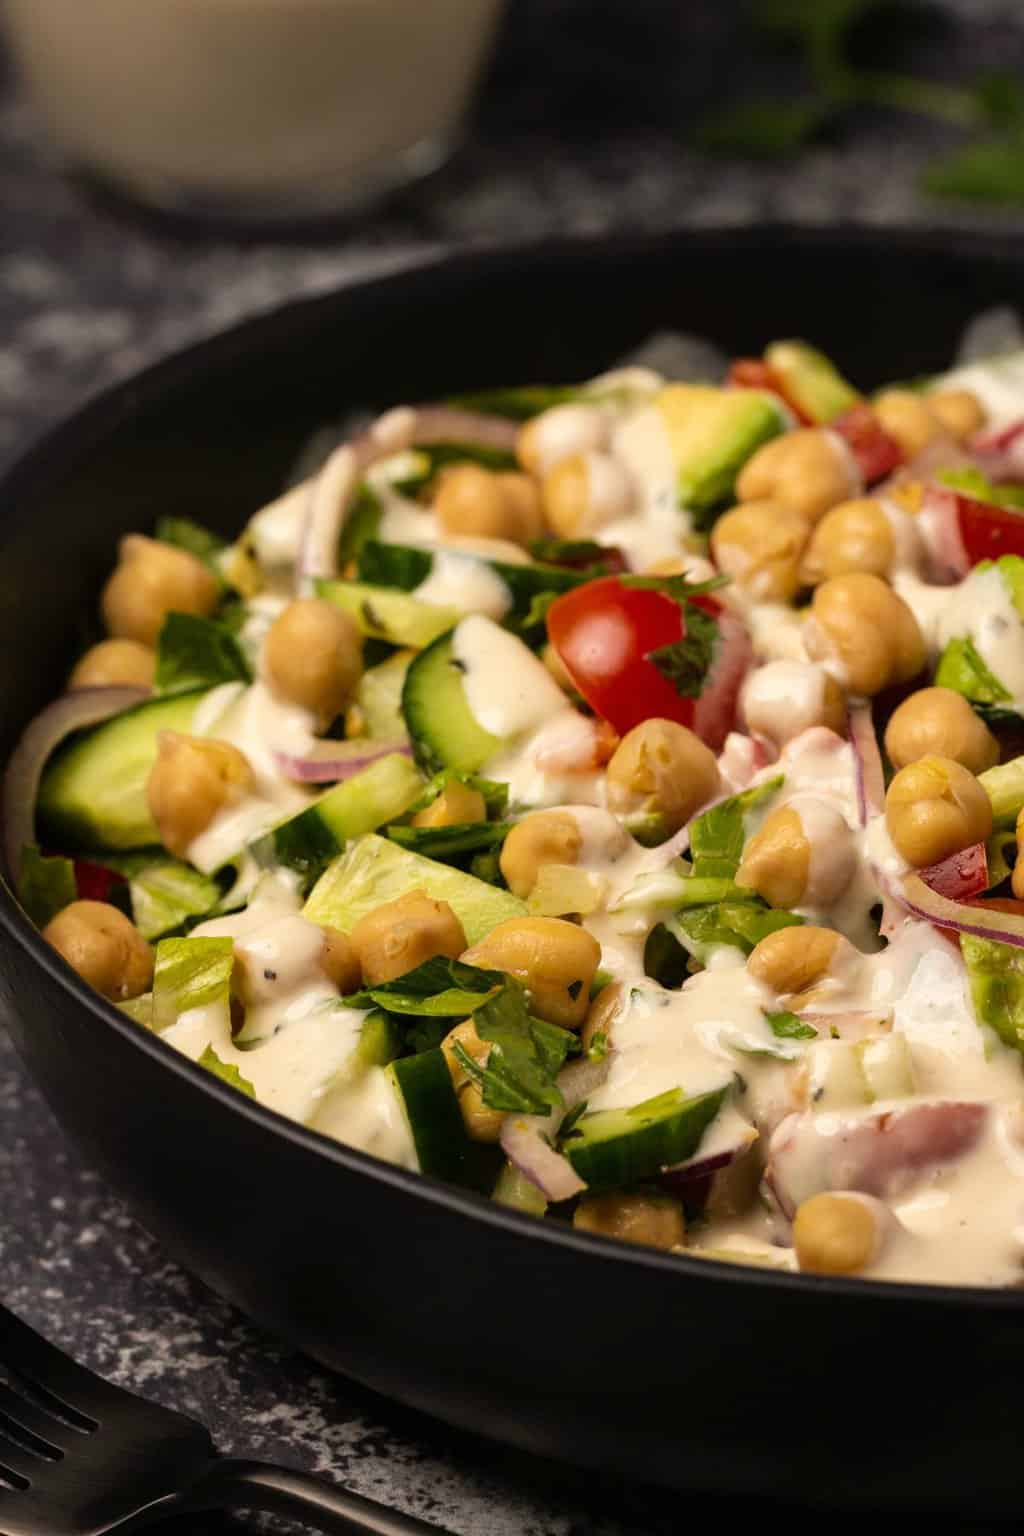 Vegan chickpea salad topped with tahini dressing in a black bowl.